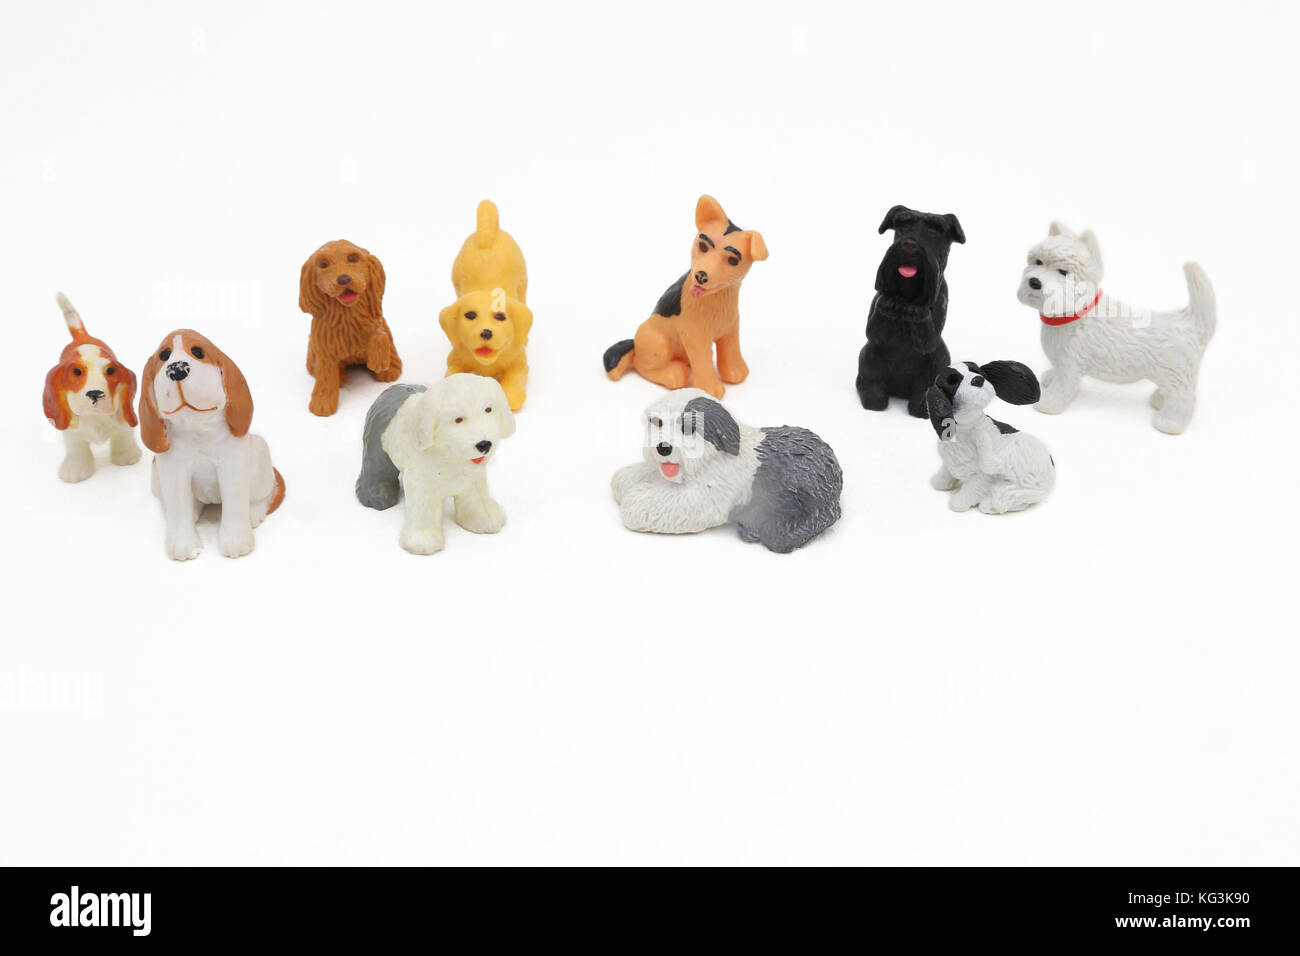 Vintage 1990s Toys Puppy In My Pocket Dogs Stock Photo 164808812